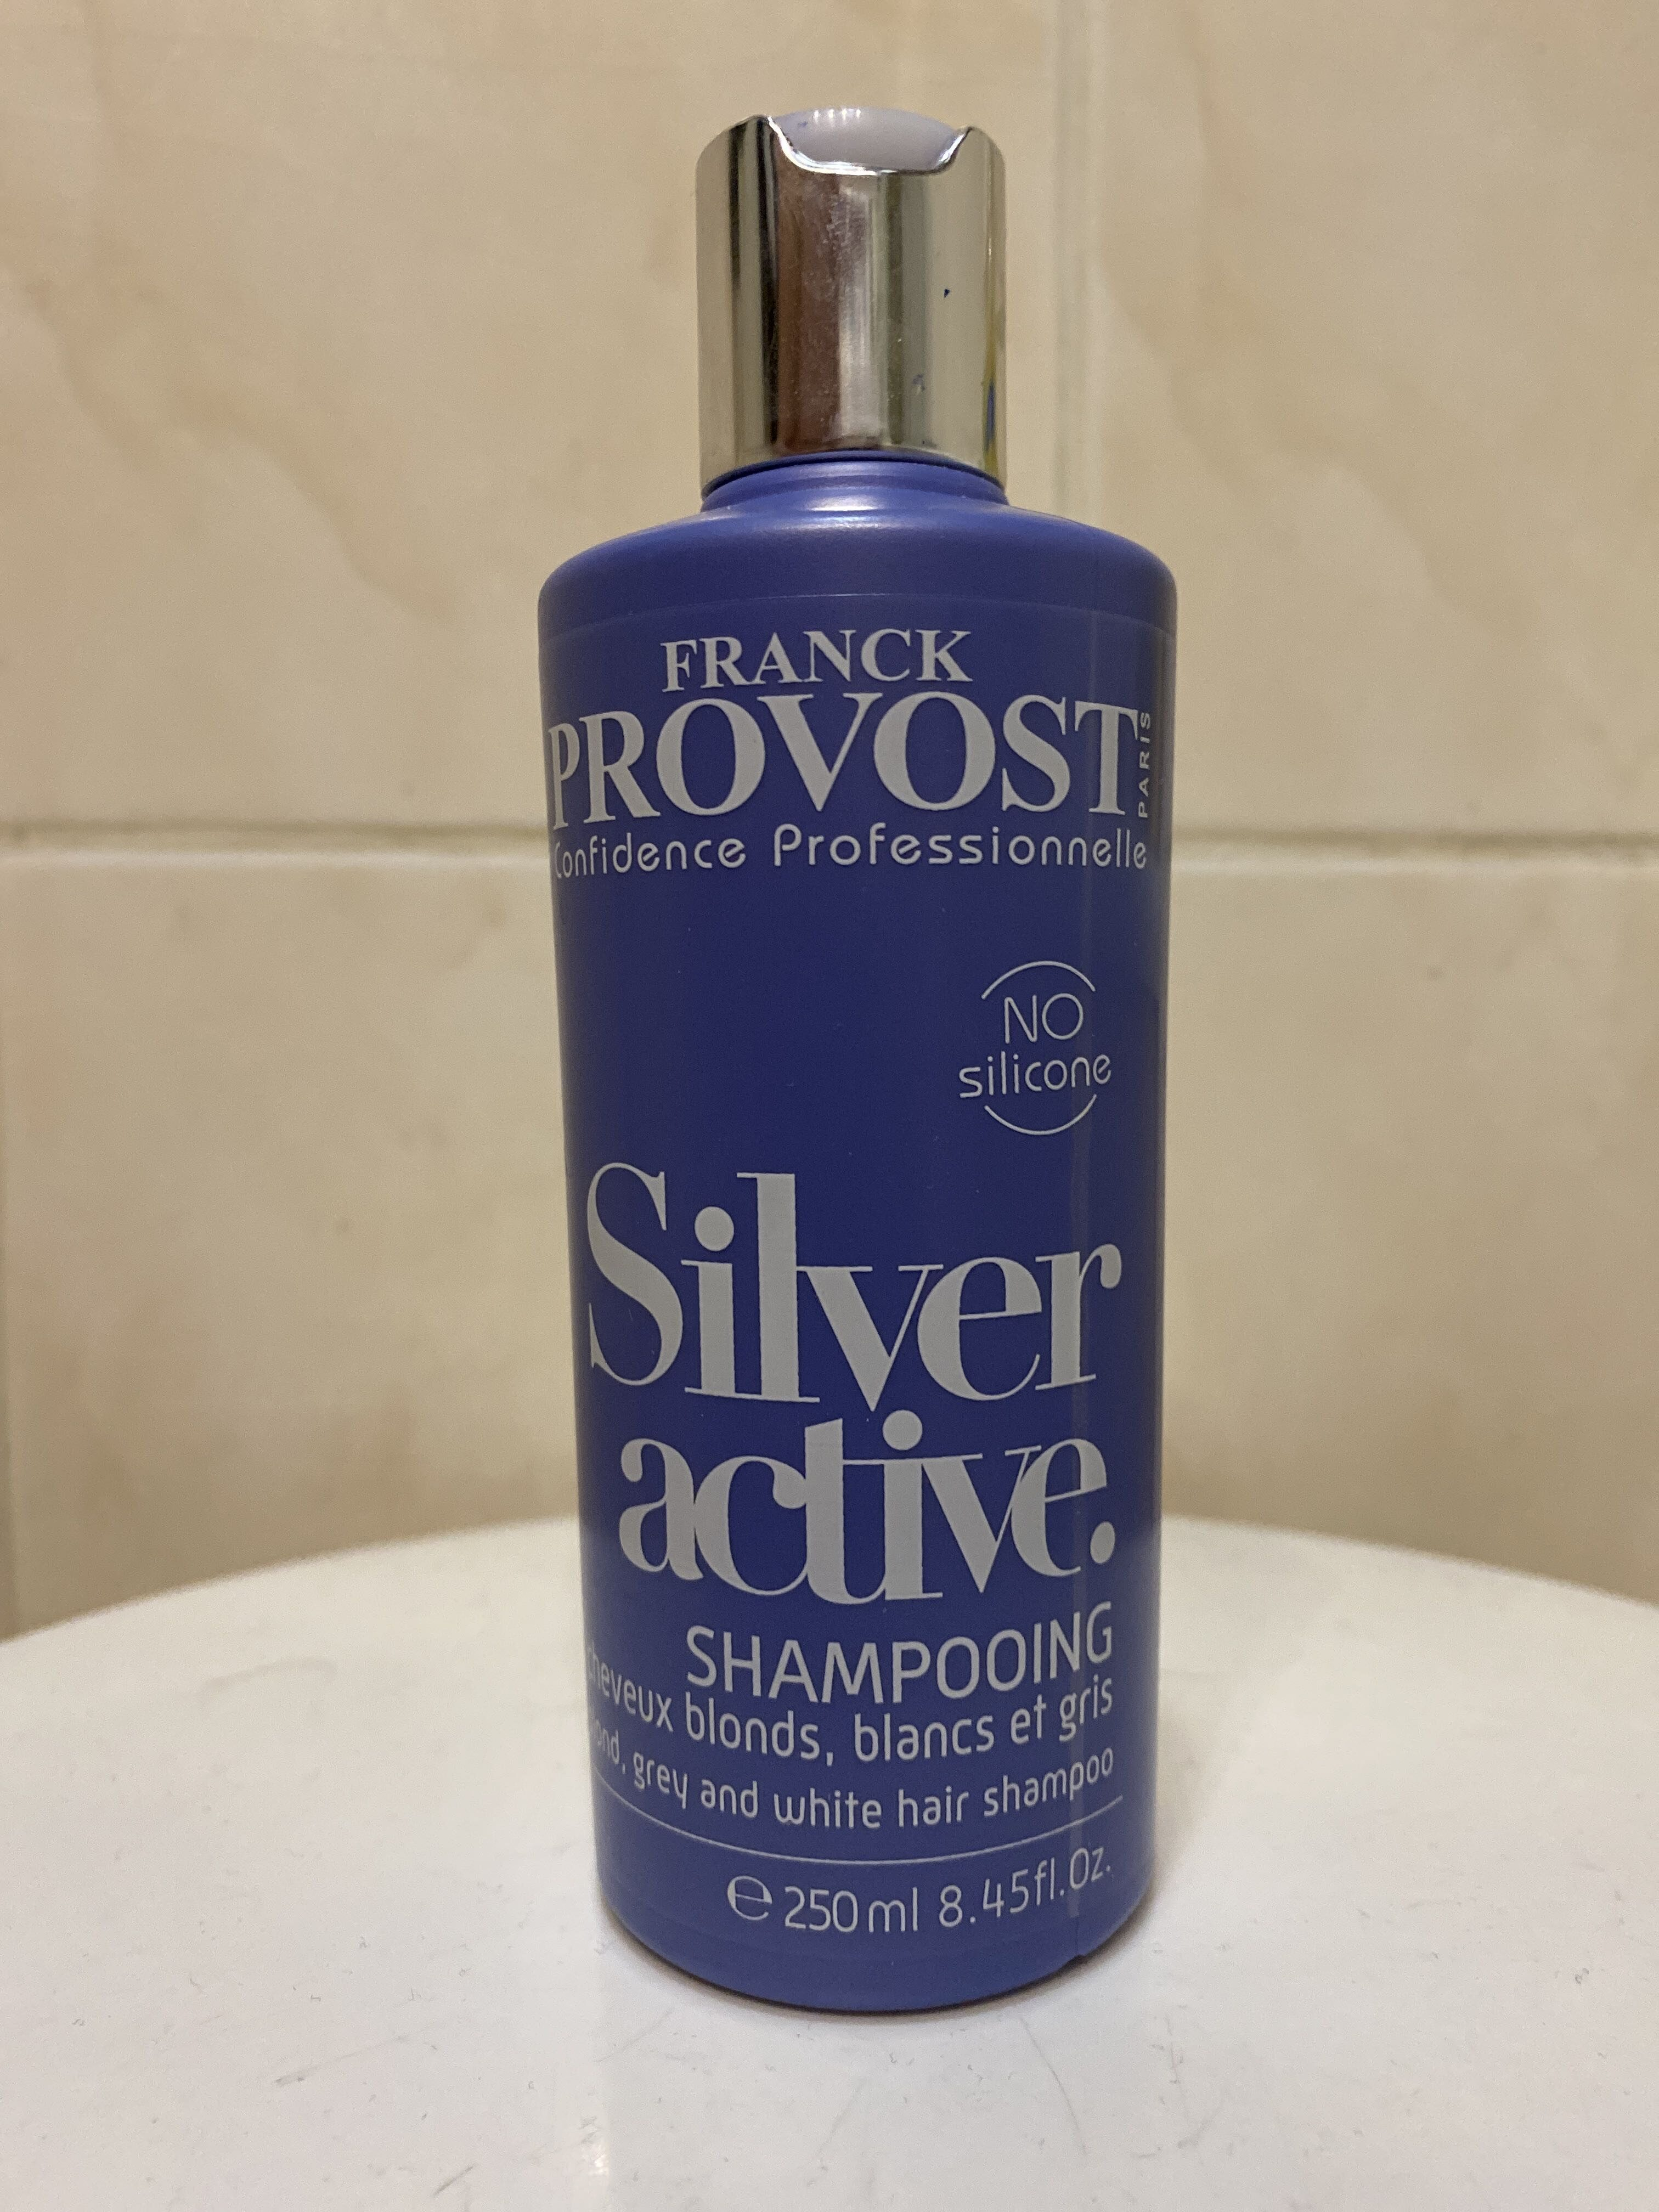 Silver Active Shampooing - Product